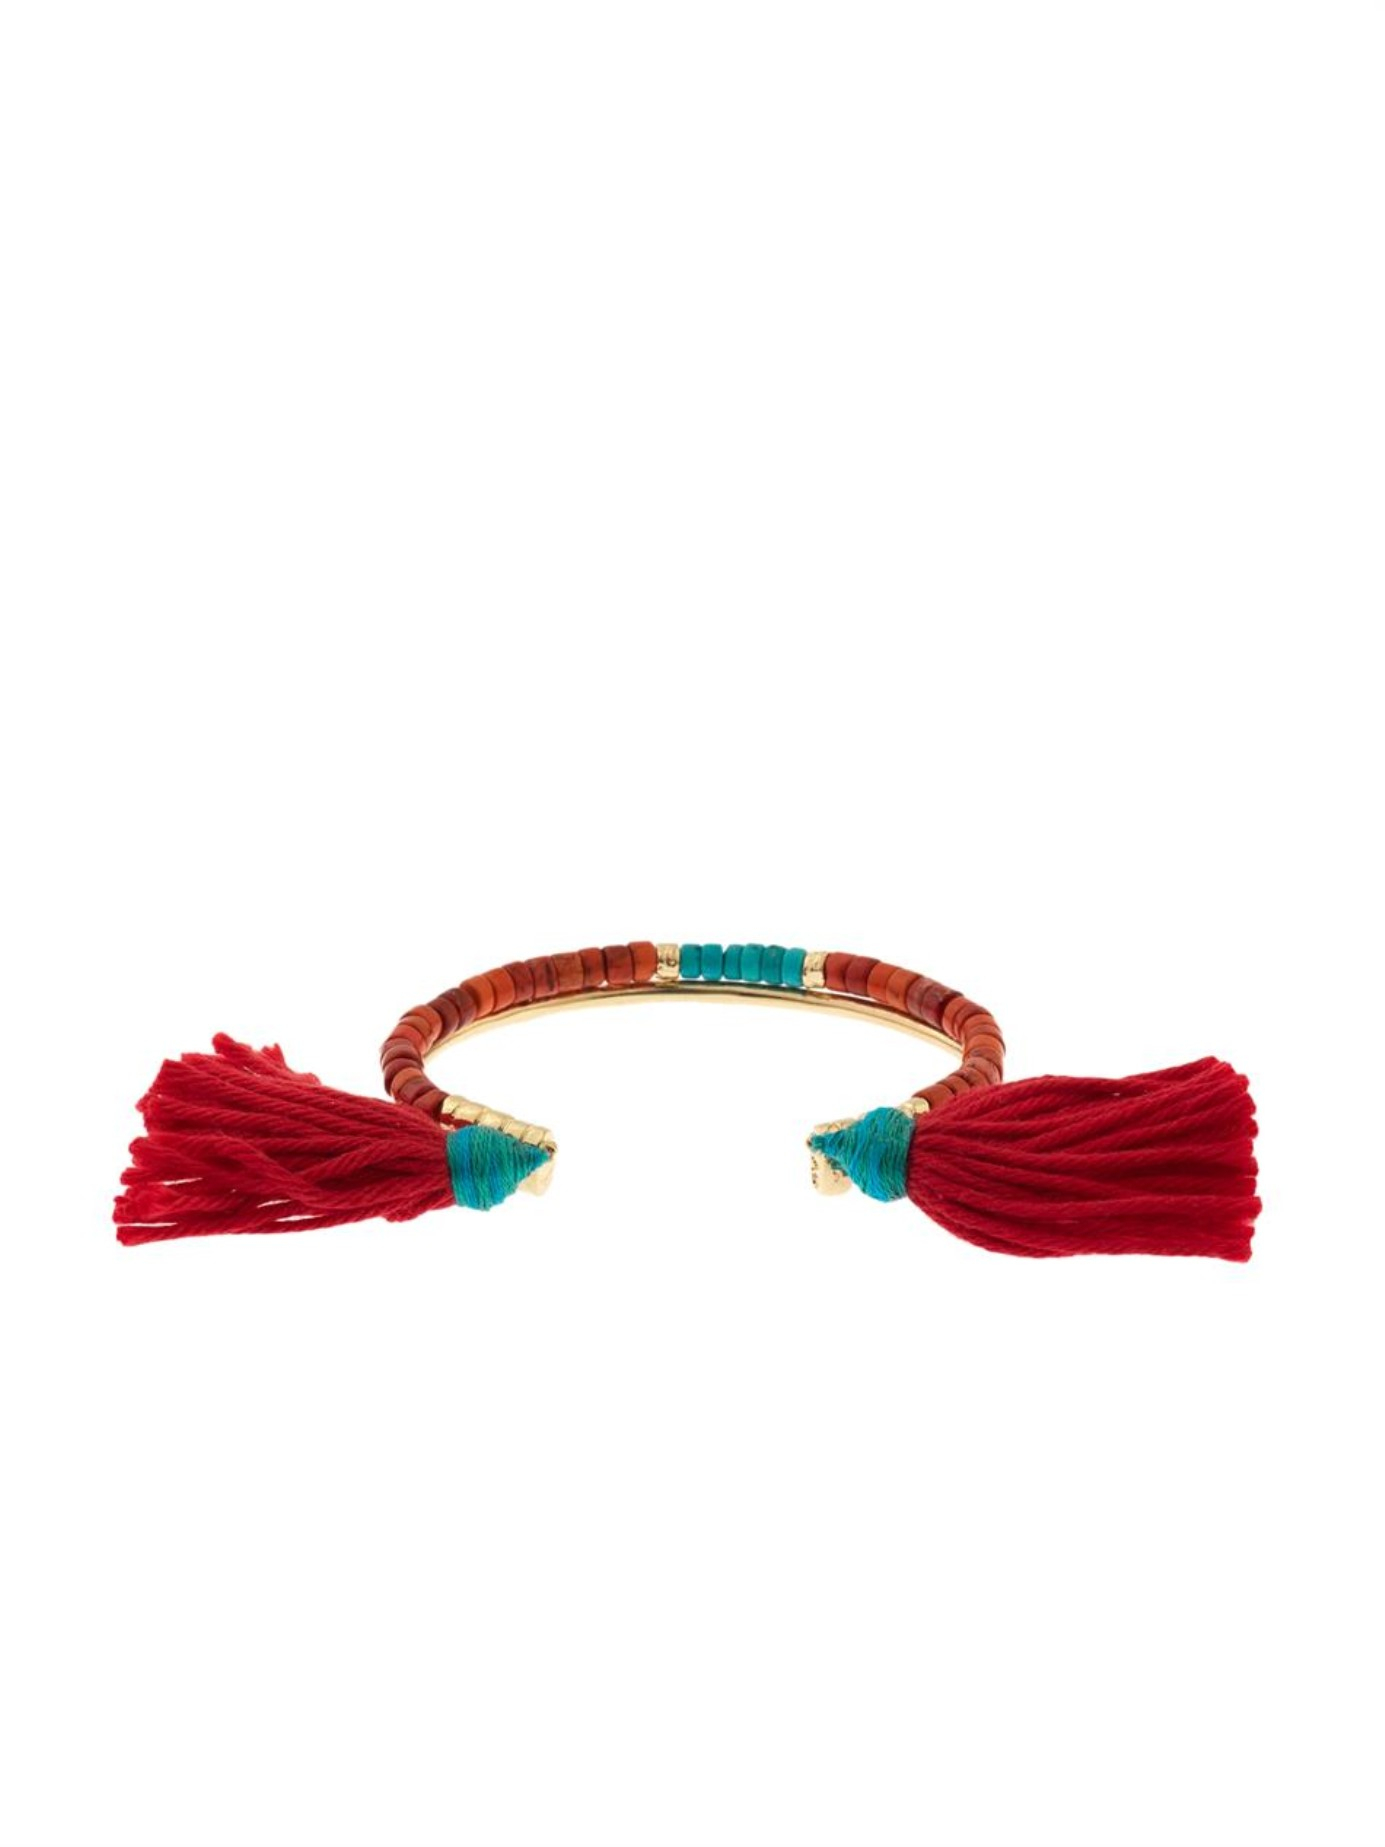 Aurelie Bidermann Sioux Coral, Bamboo & Gold-Plated Cuff in Pink